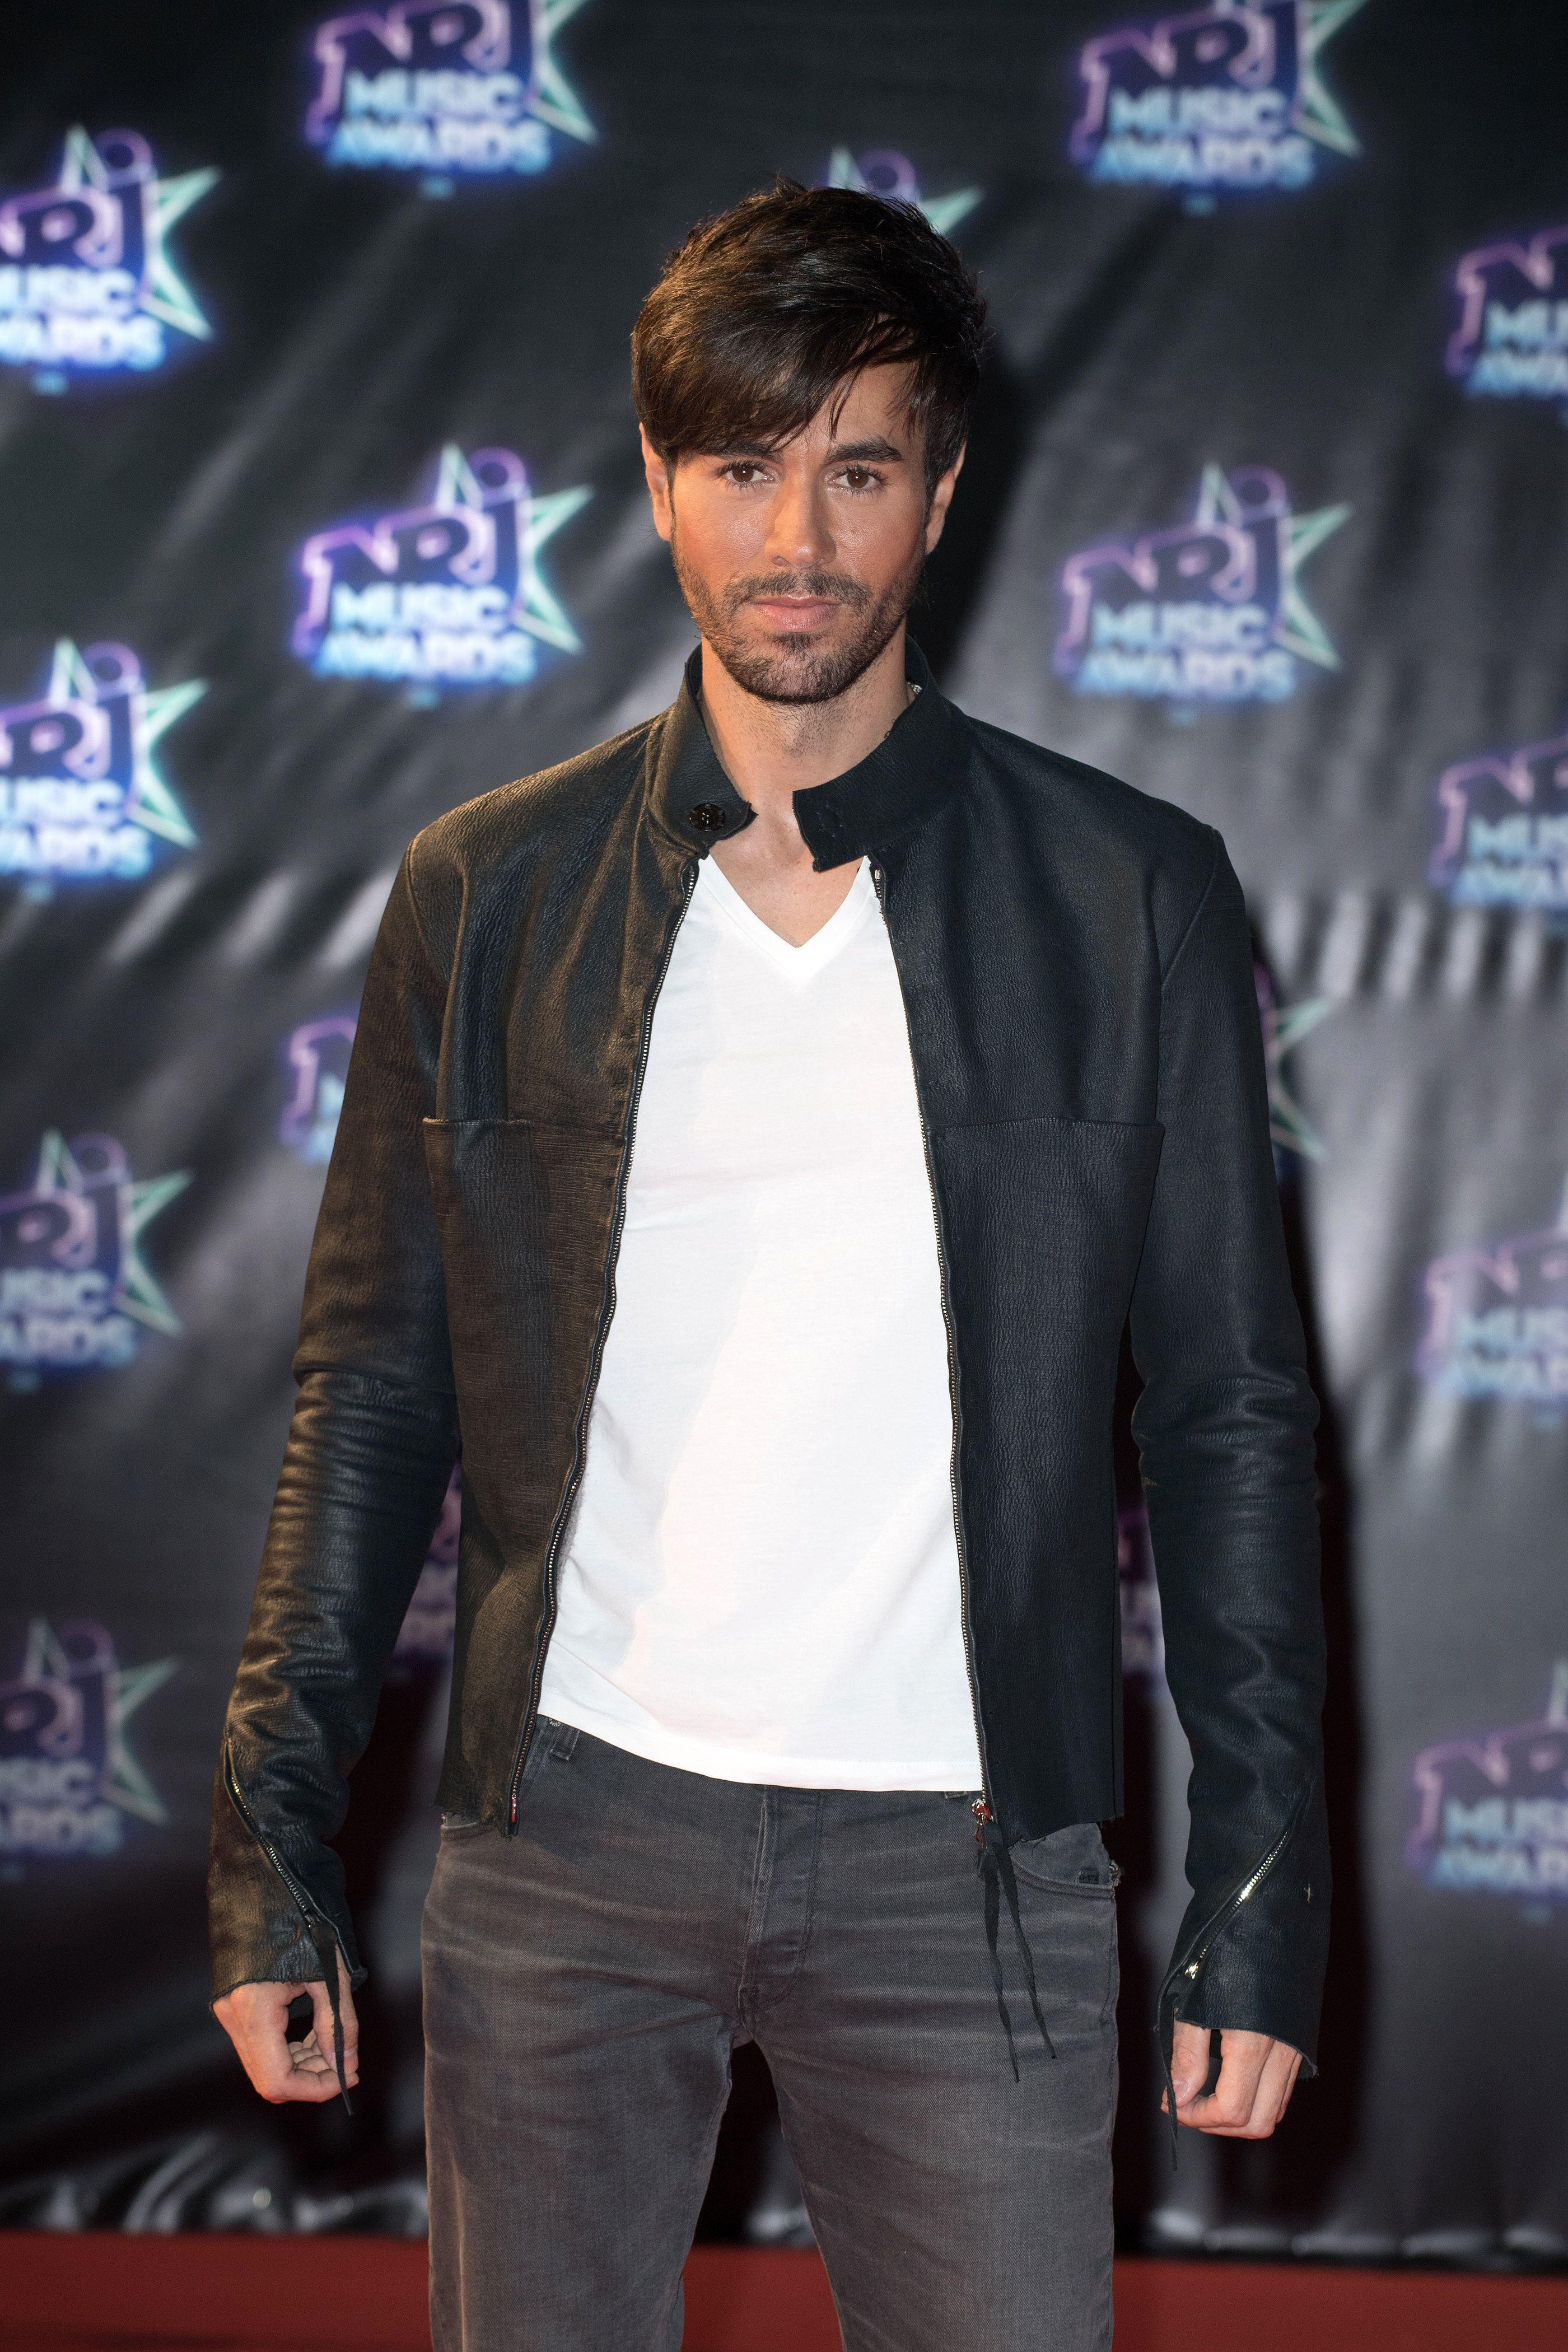 Enrique Iglesias attends the NRJ Music Awards in Cannes, France on Nov. 12, 2016.